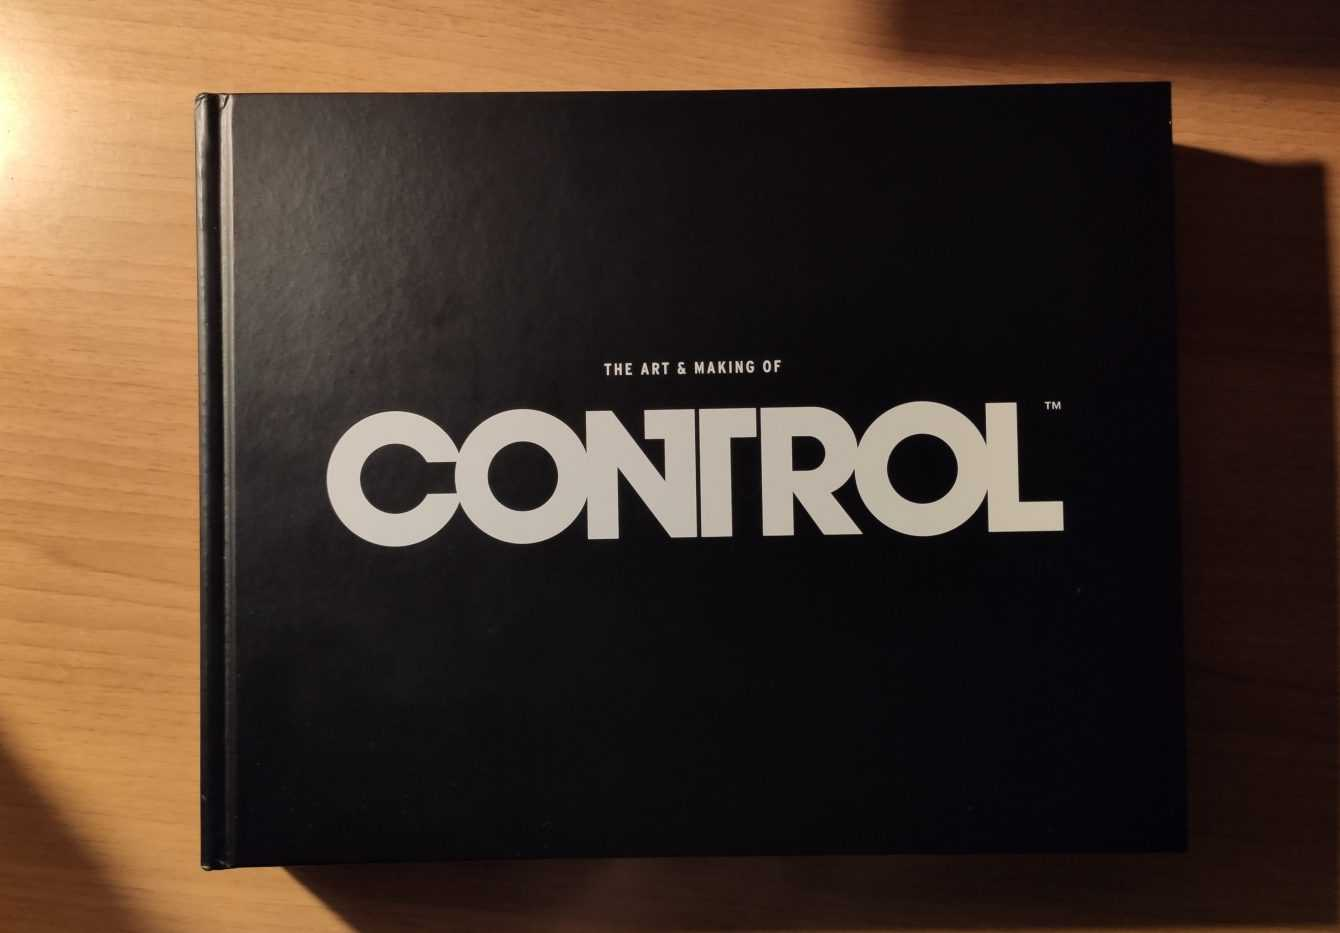 The Art and Making of Control: a journey between the ordinary and the paranormal